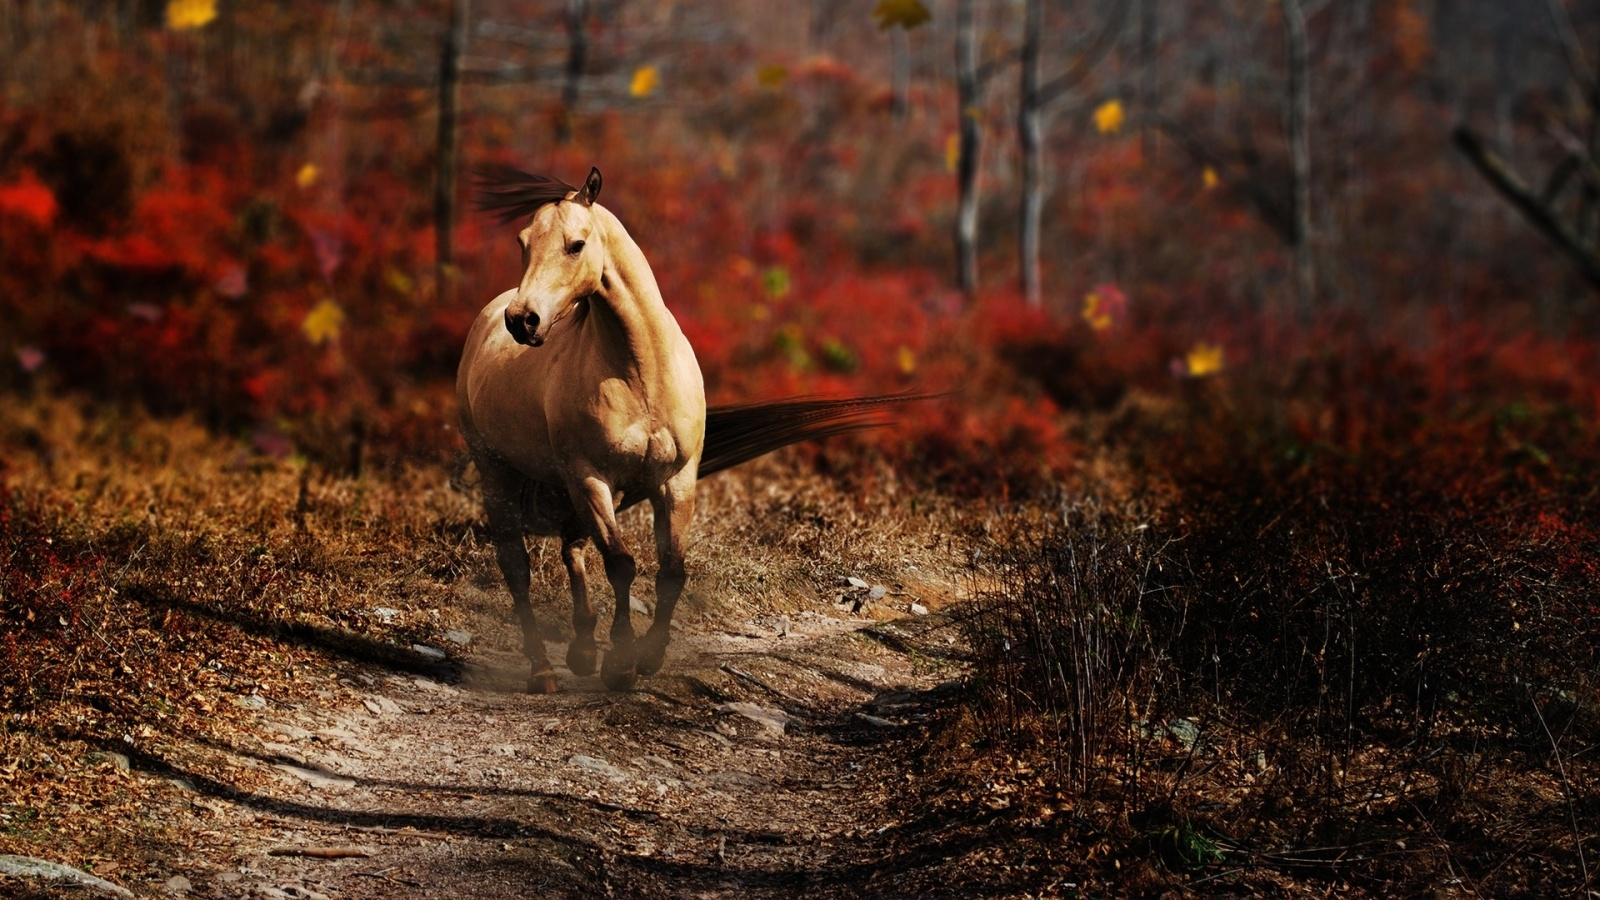 Fall Leaves Desktop Wallpaper Backgrounds Latest Horses Wallpapers Entertainment Only